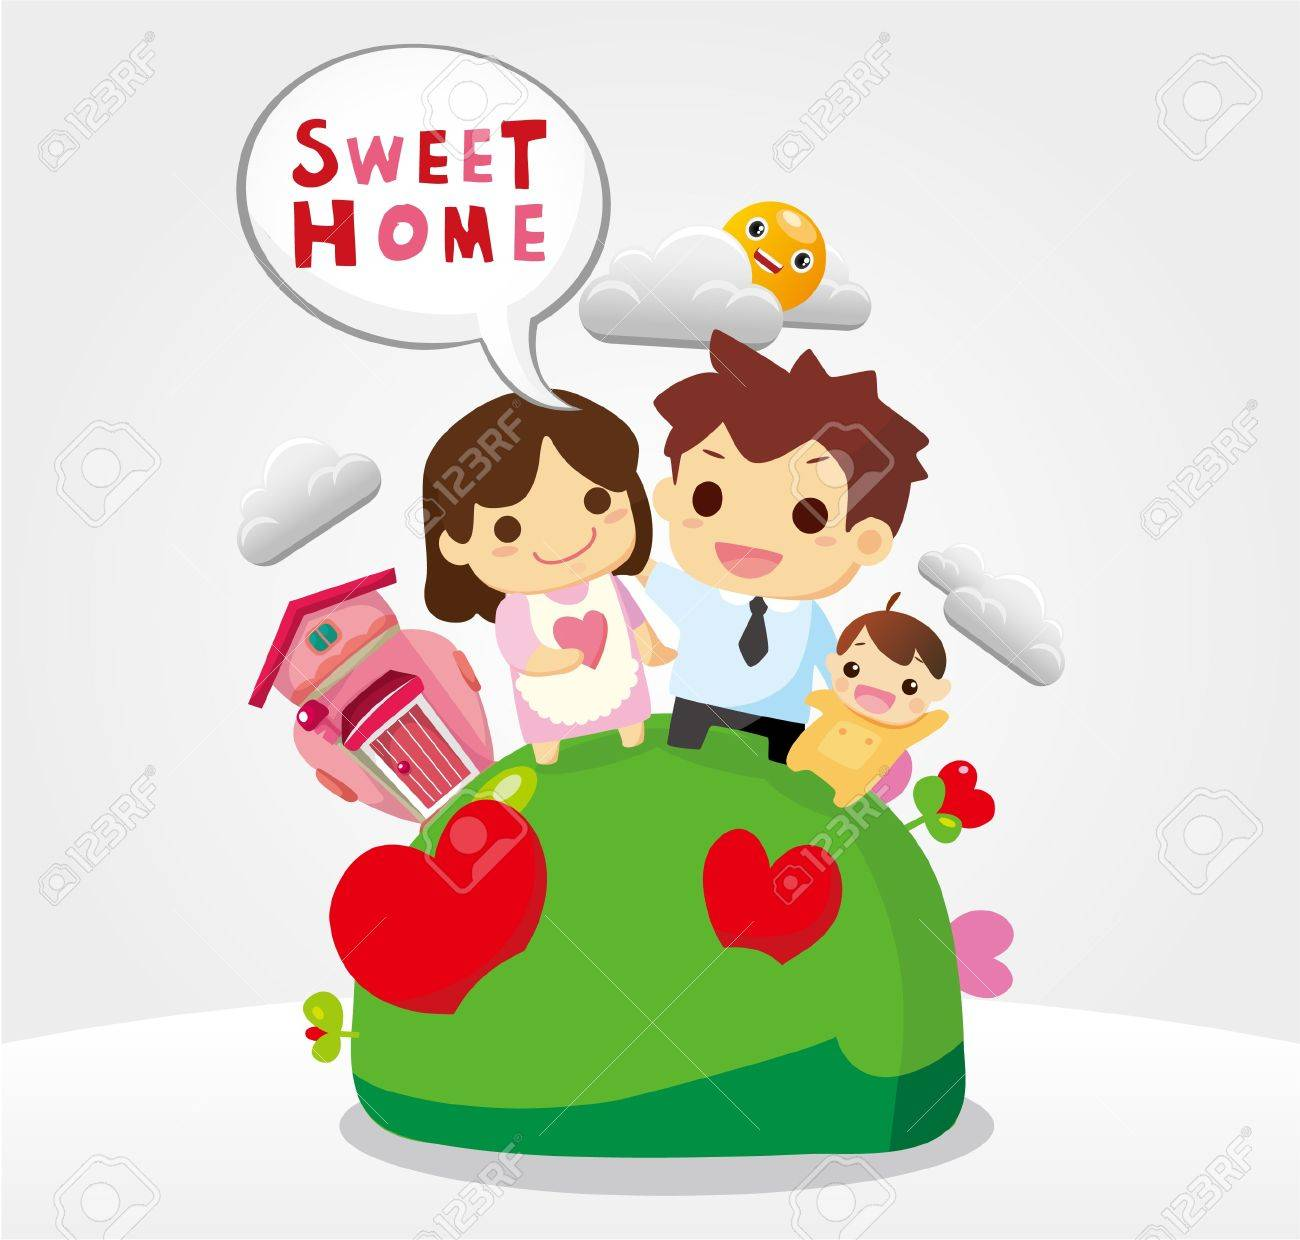 sweet home, family card Stock Vector - 10178808